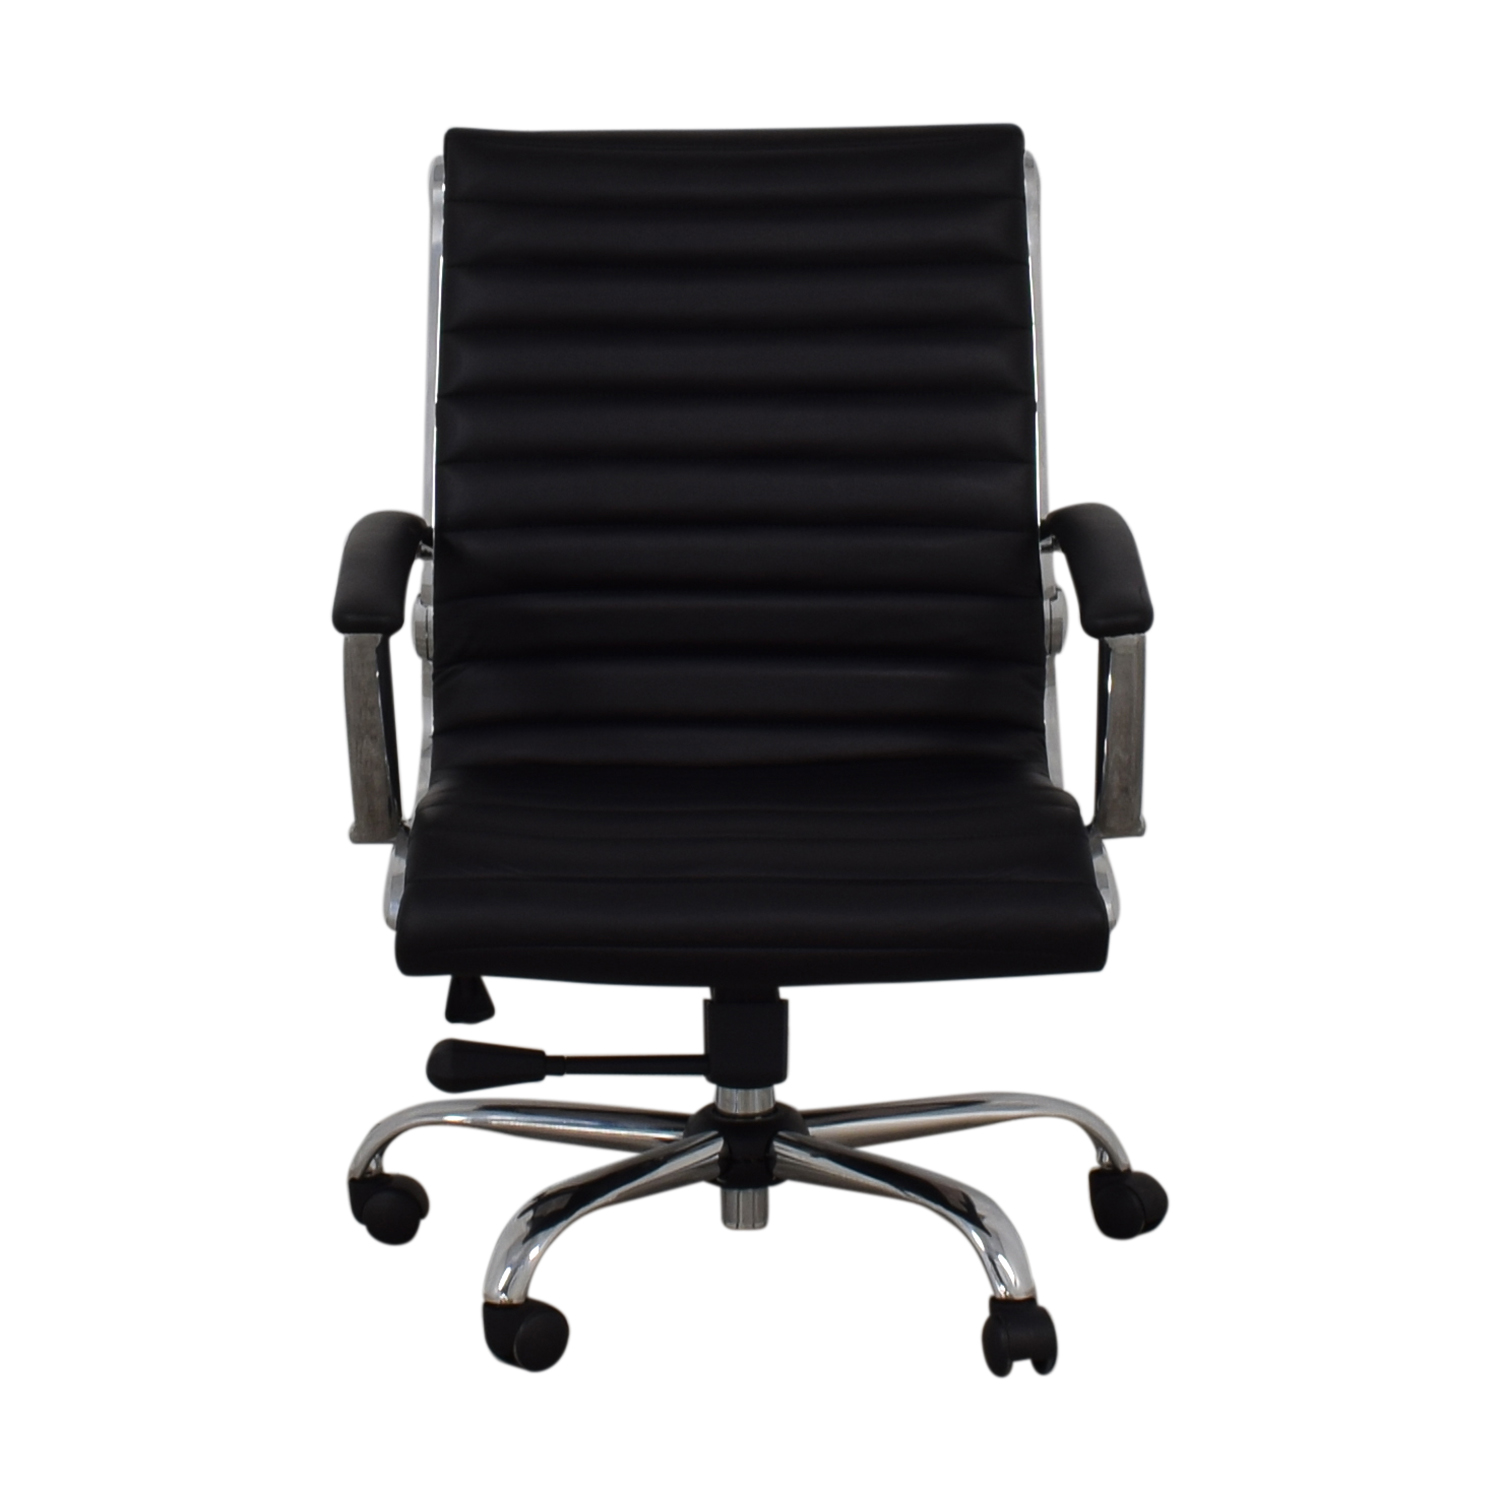 Staples Staples Adjustable Black Office Chair used